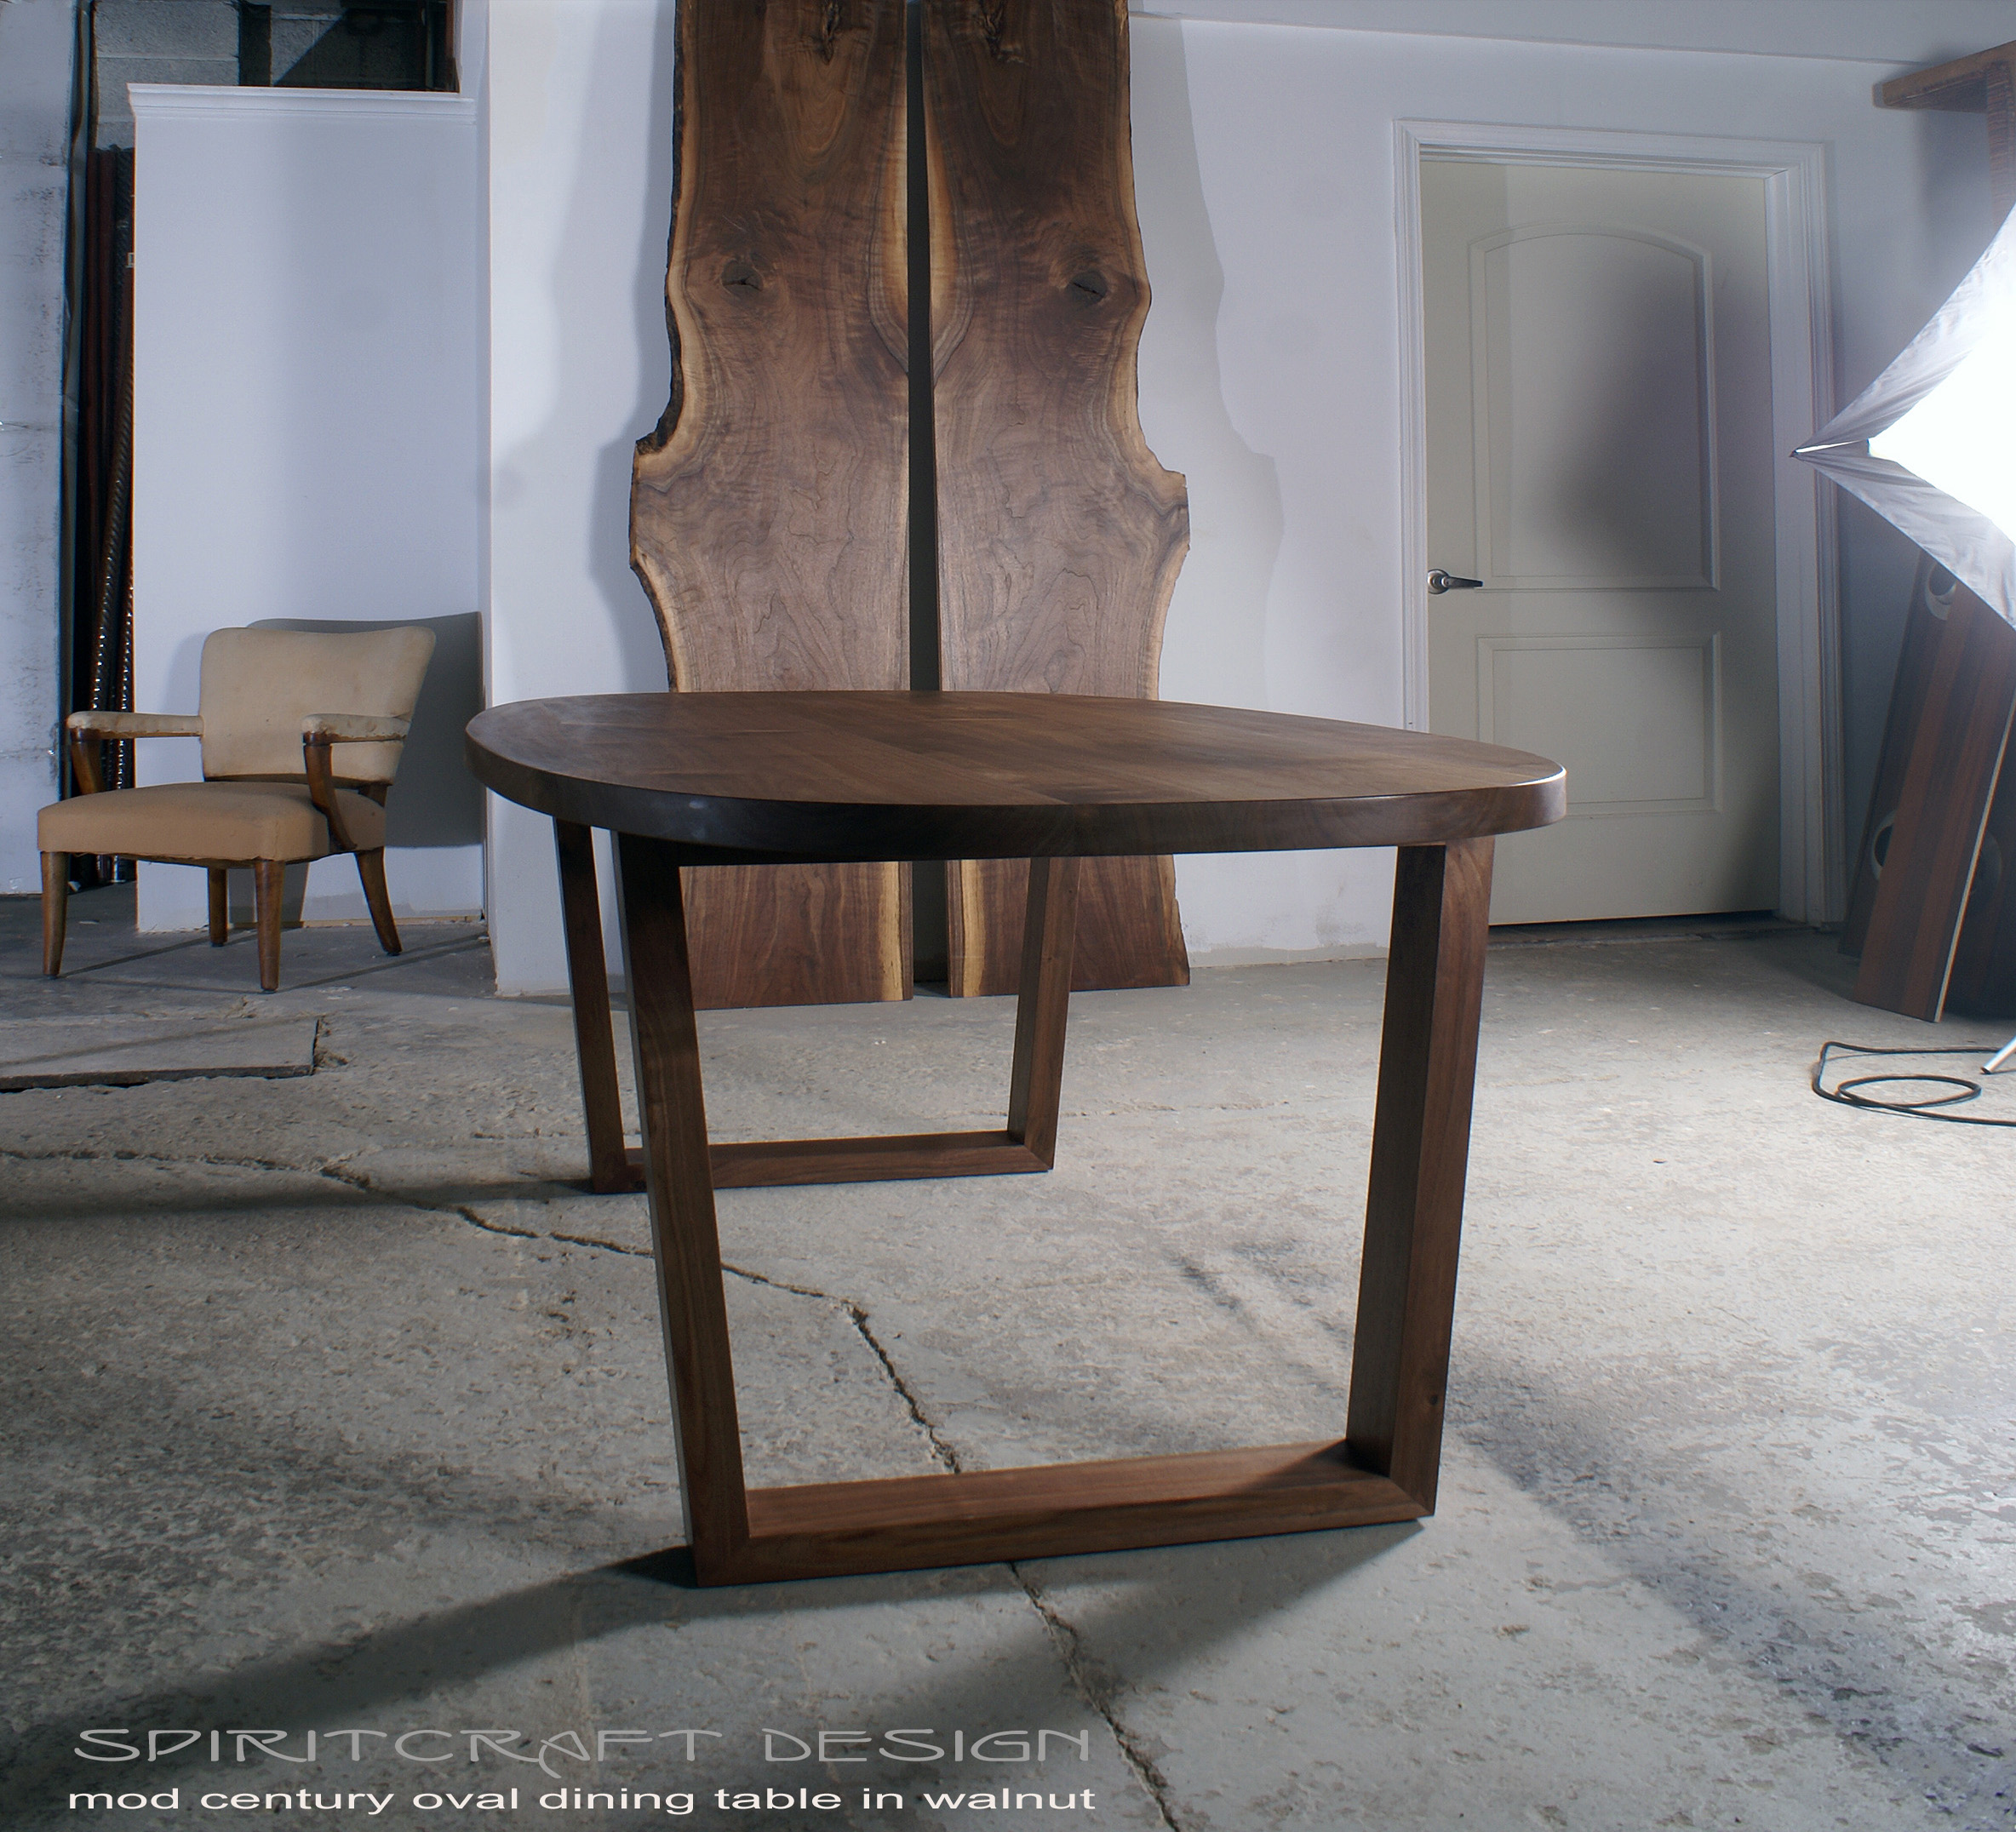 Popular Timeless Design meets Enduring Quality in a Modern Walnut Dining Table YJ25